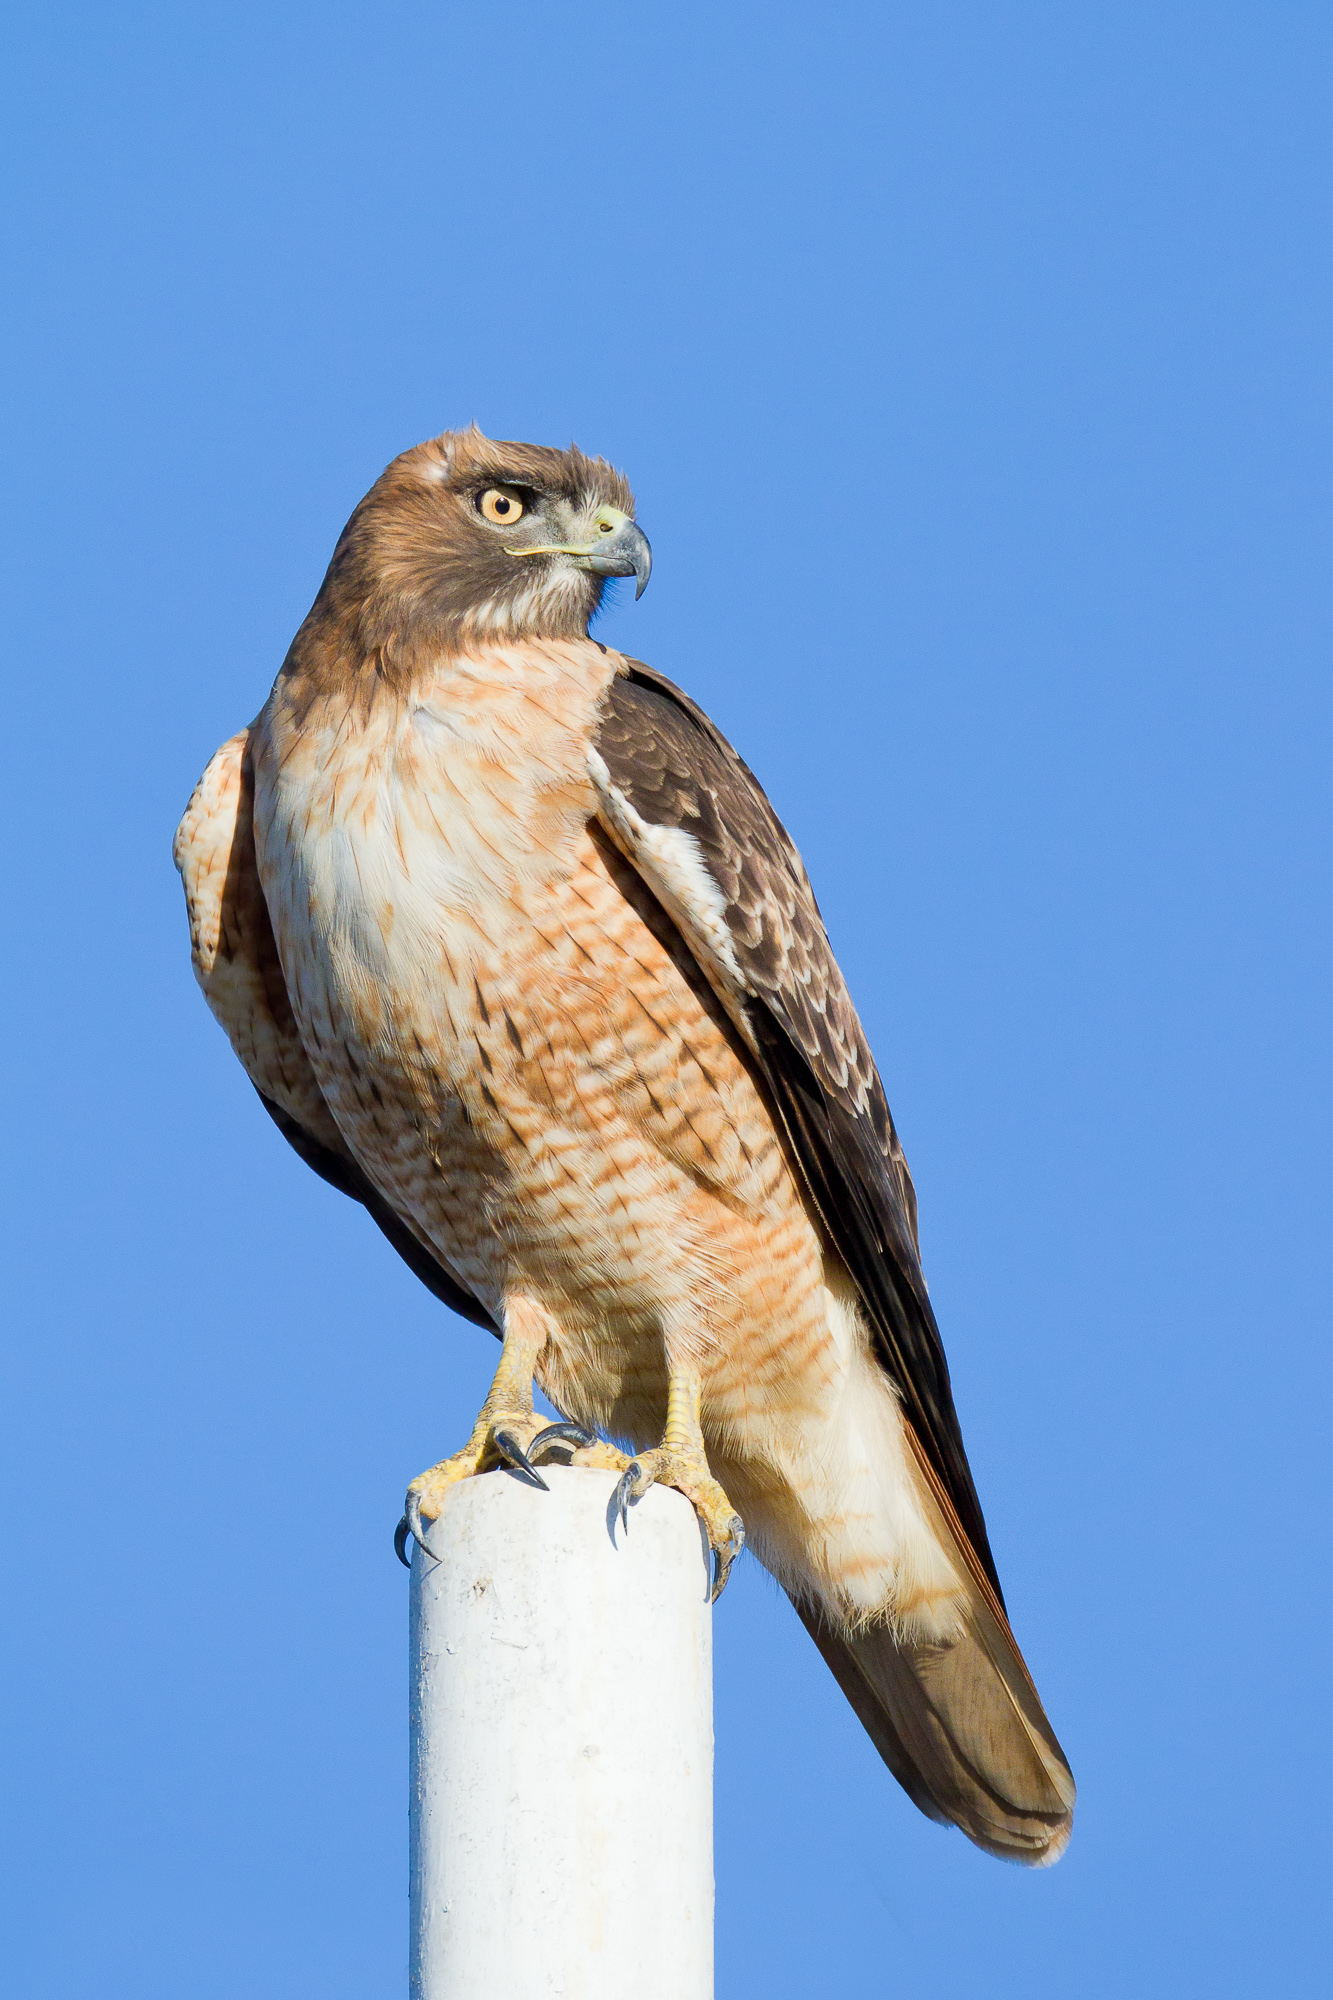 A red-tailed hawk perches on a tall pole, looking for prey